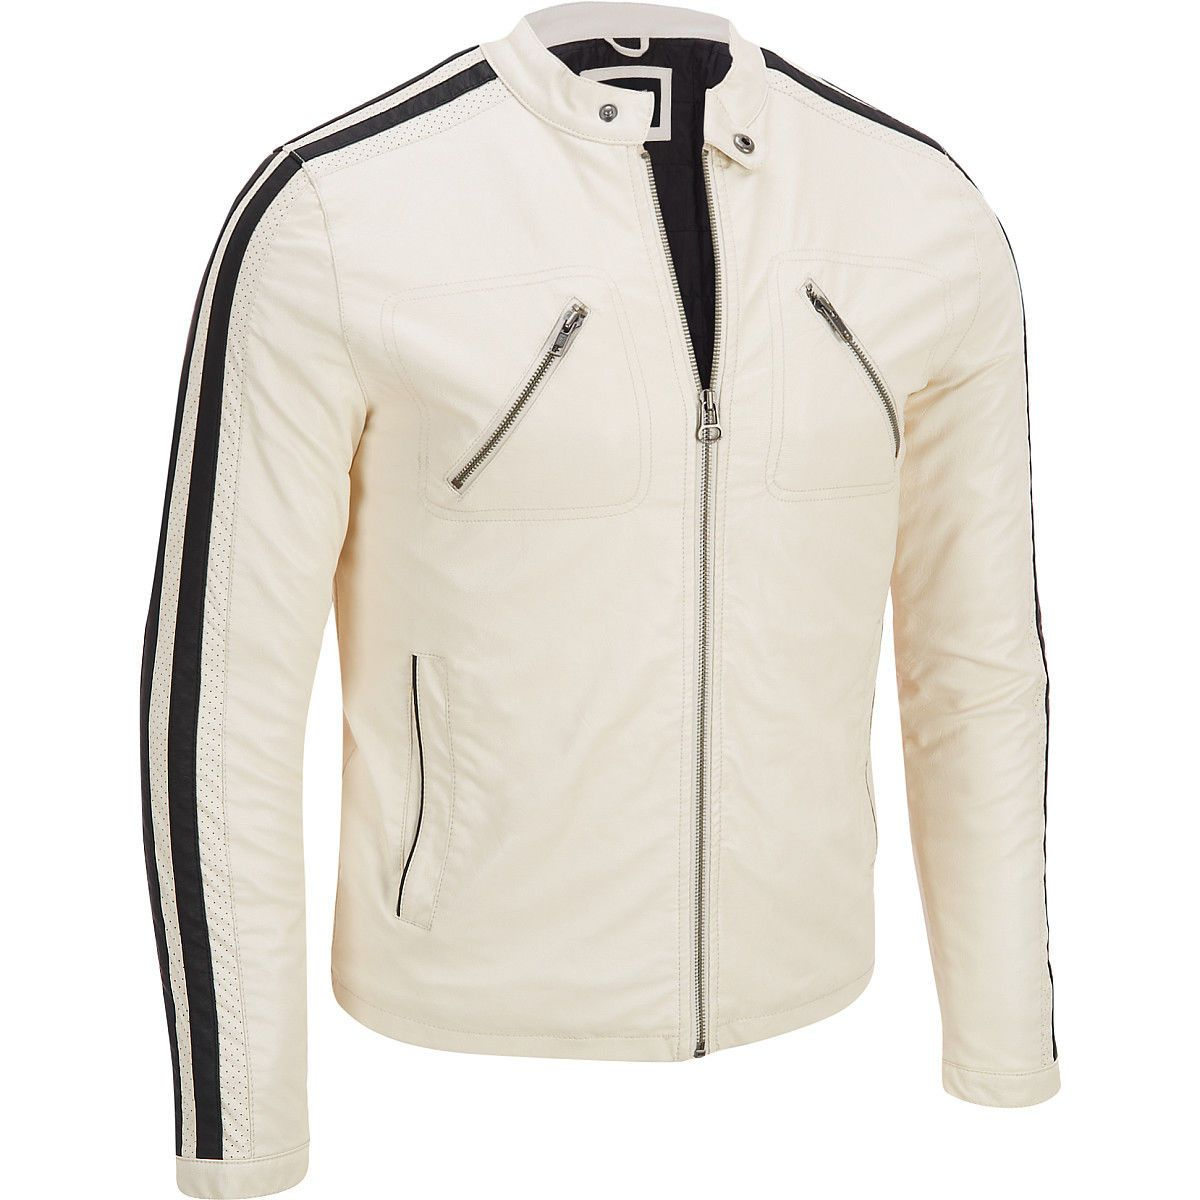 Men S Wilsons Leather Stripe Sleeve Faux Leather Jacket Gift Affiliate Products For Sale Leather Jacket Men Leather Jacket Brands High Quality Leather Jacket [ 1200 x 1200 Pixel ]